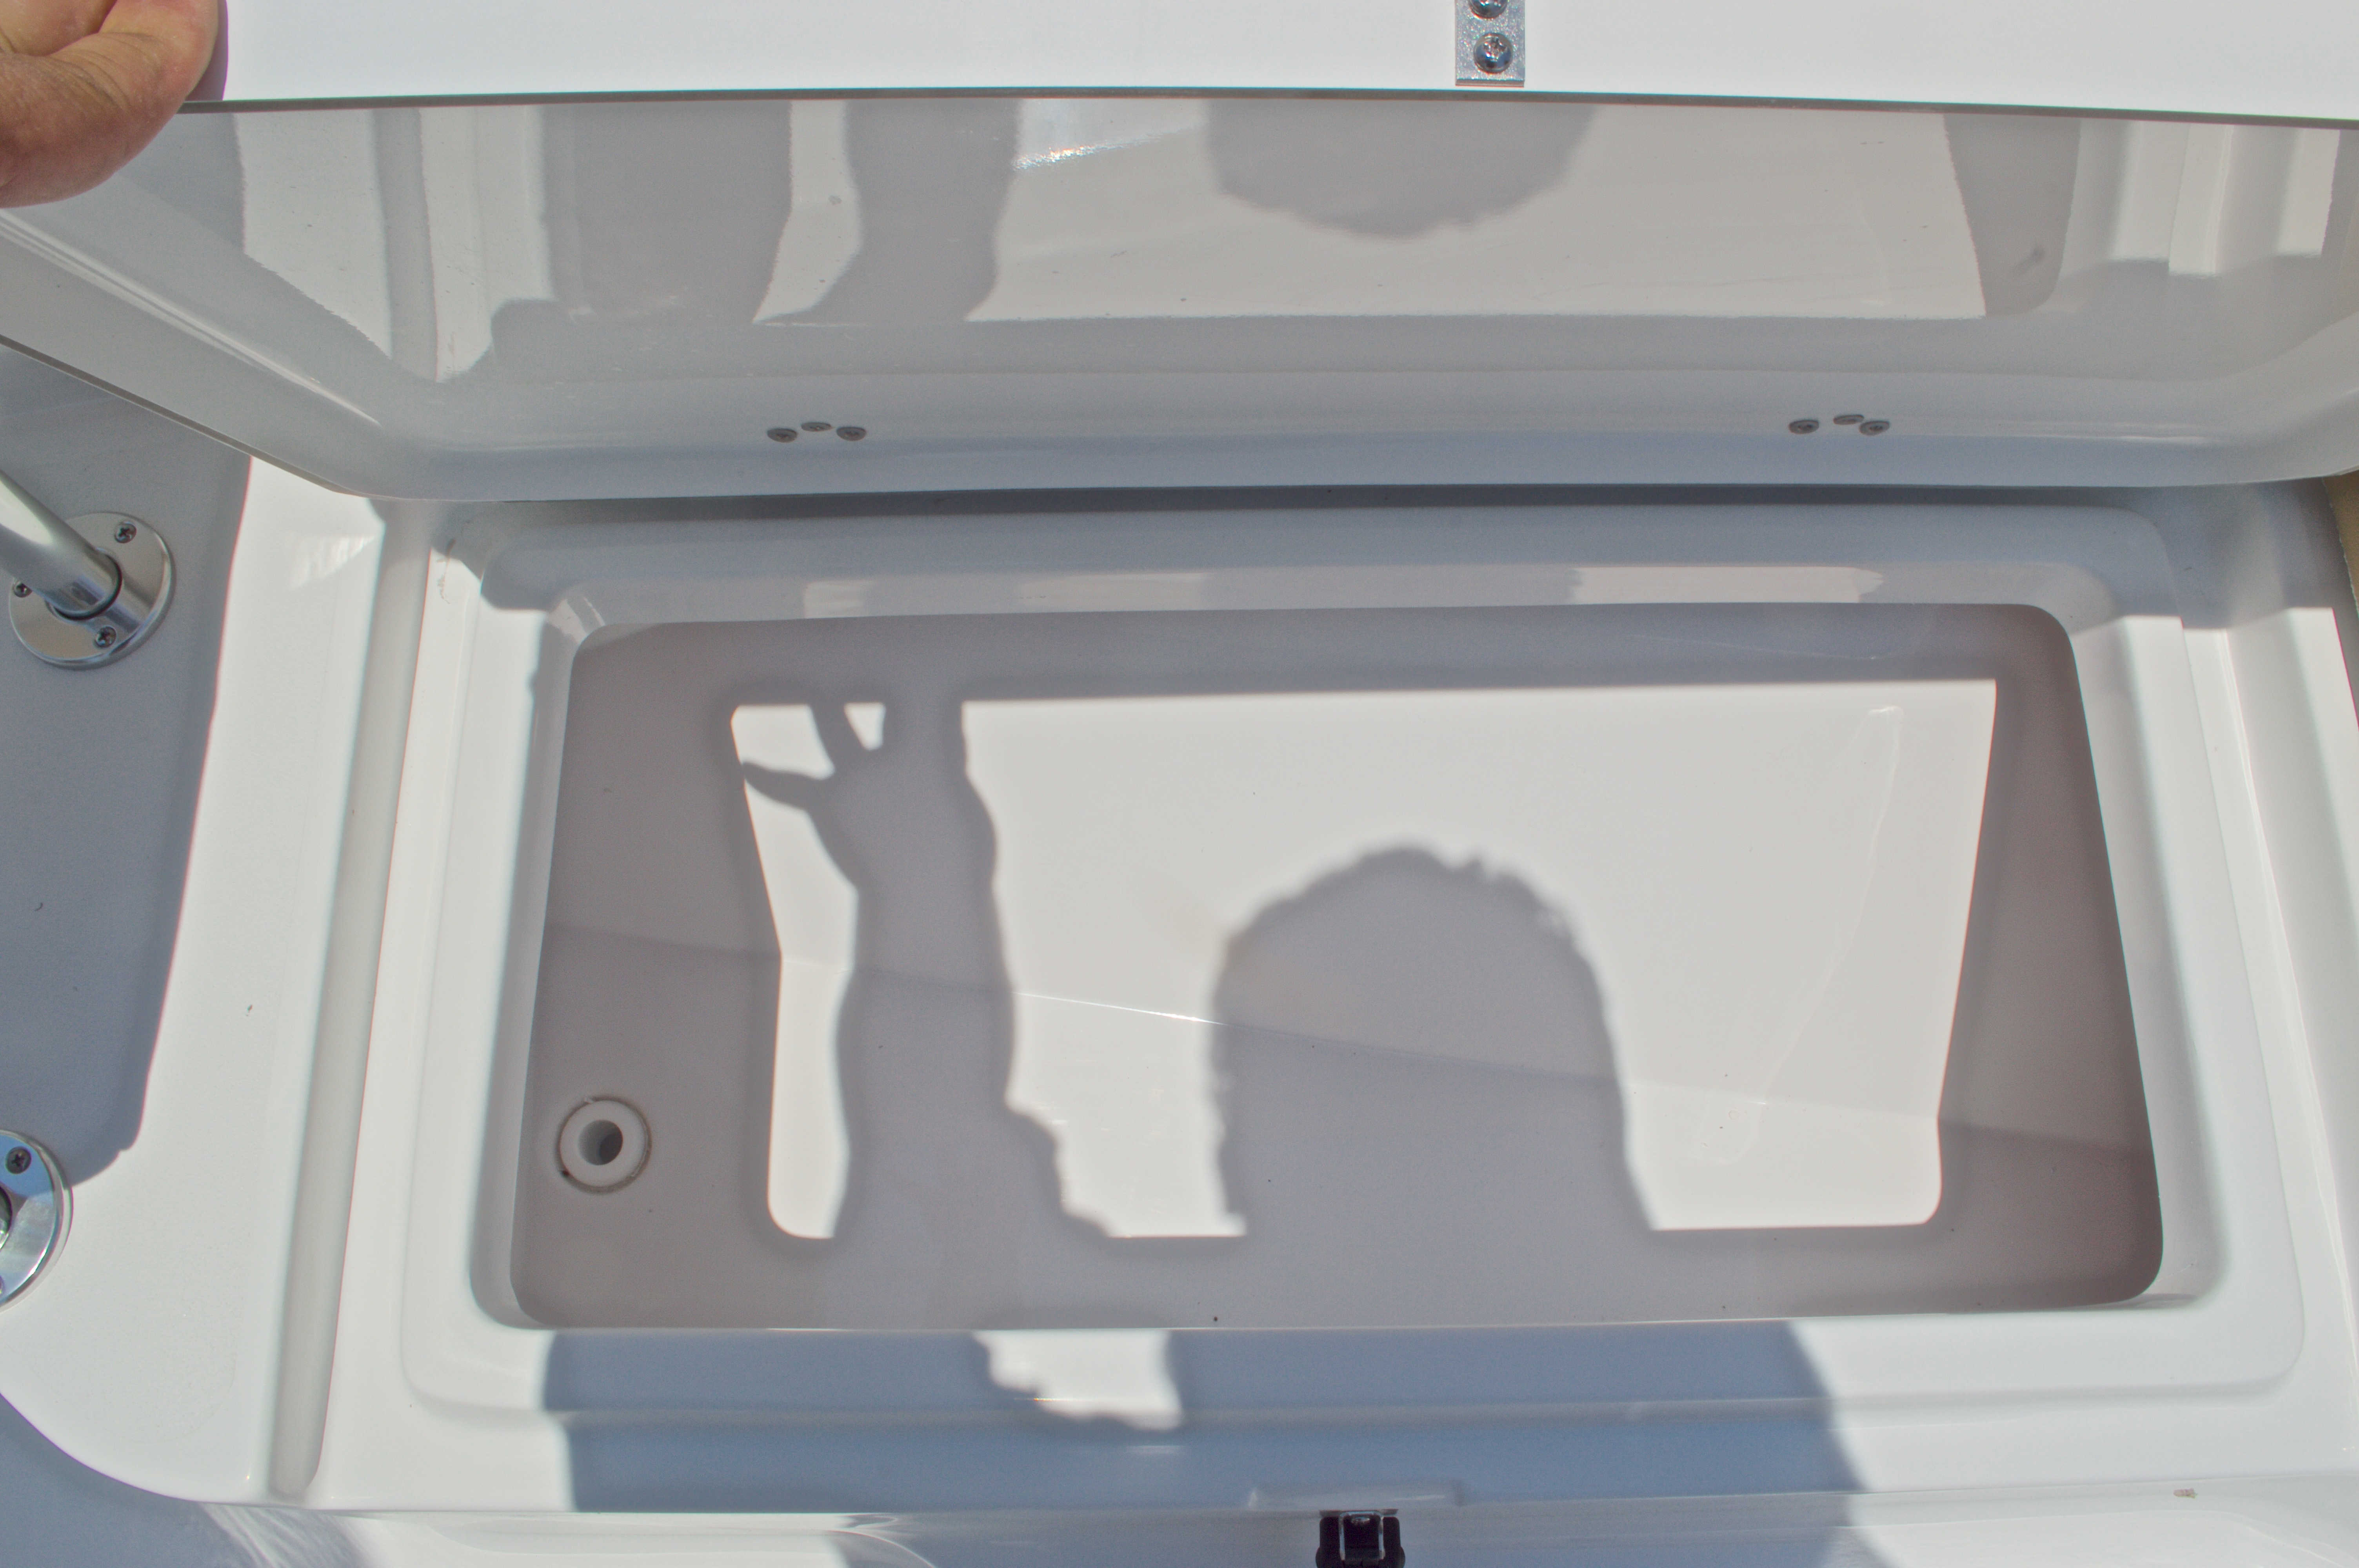 Thumbnail 37 for New 2016 Sportsman Heritage 231 Center Console boat for sale in West Palm Beach, FL